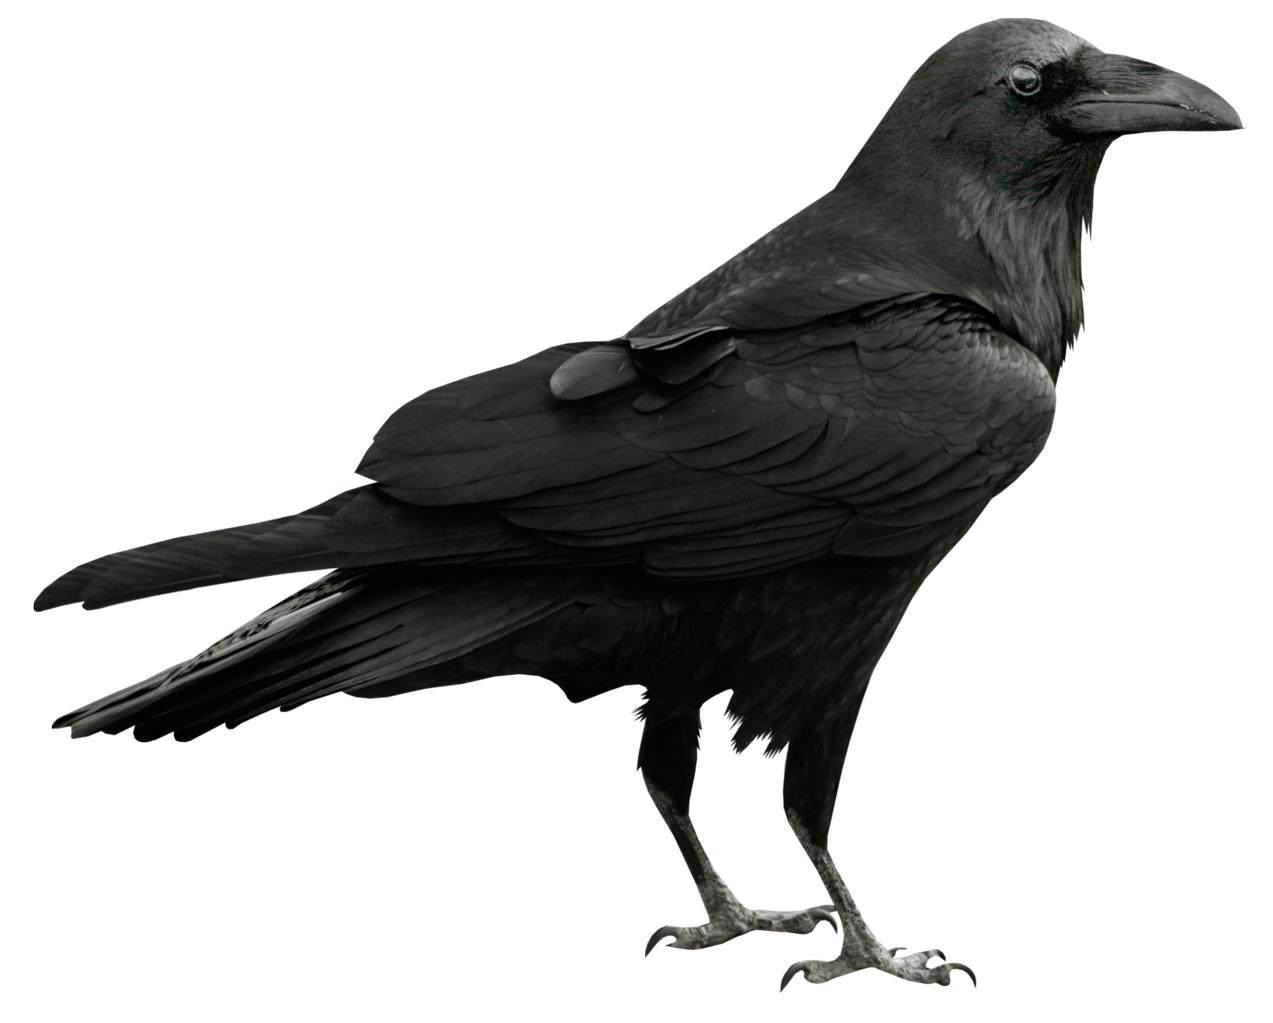 Raven PNG - 4069